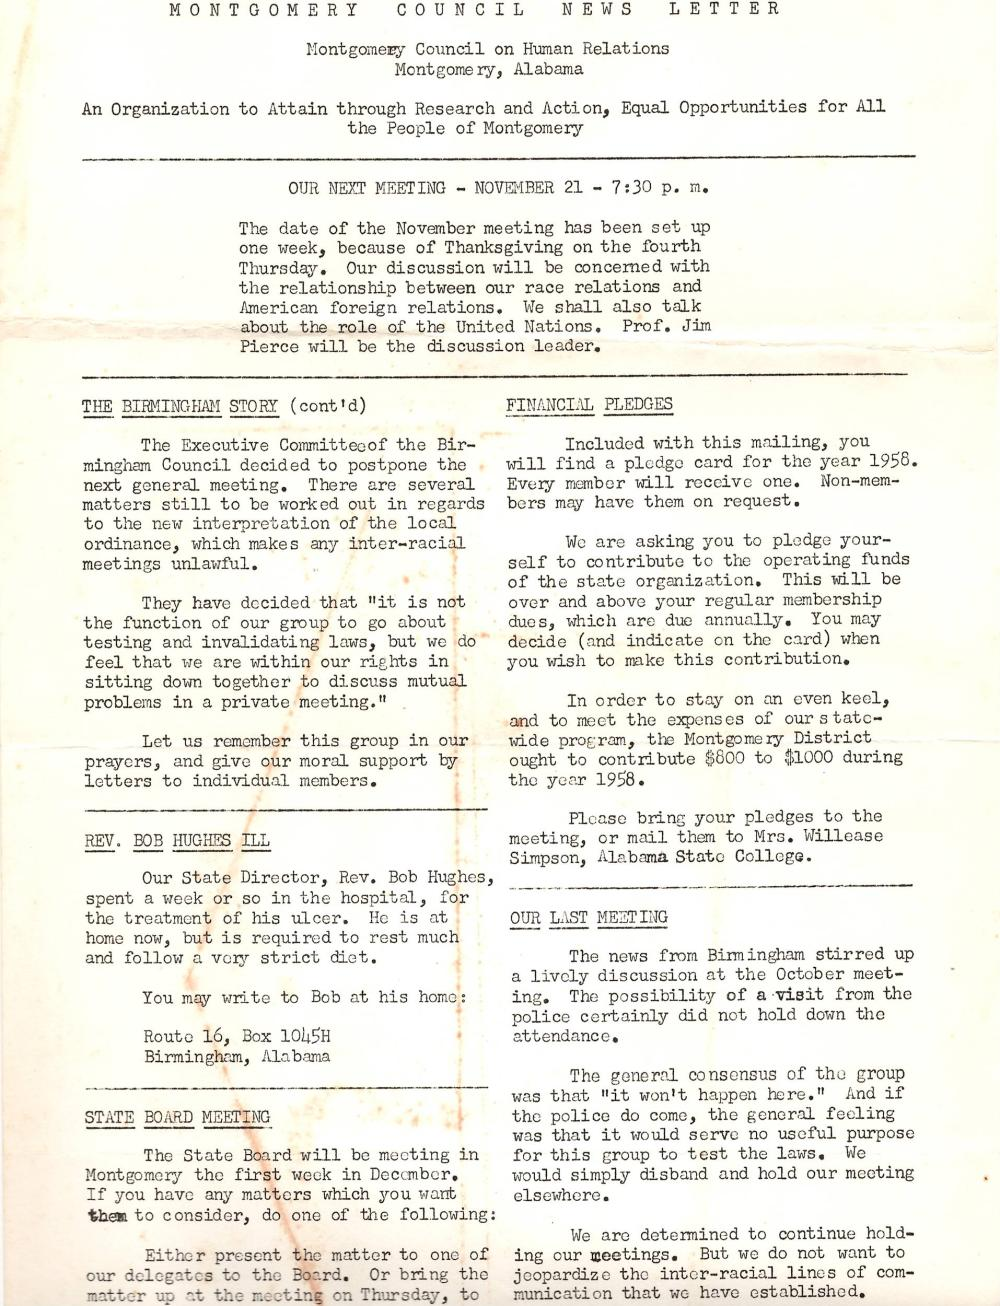 Civil Rights Montgomery Council 1960 Newsletters